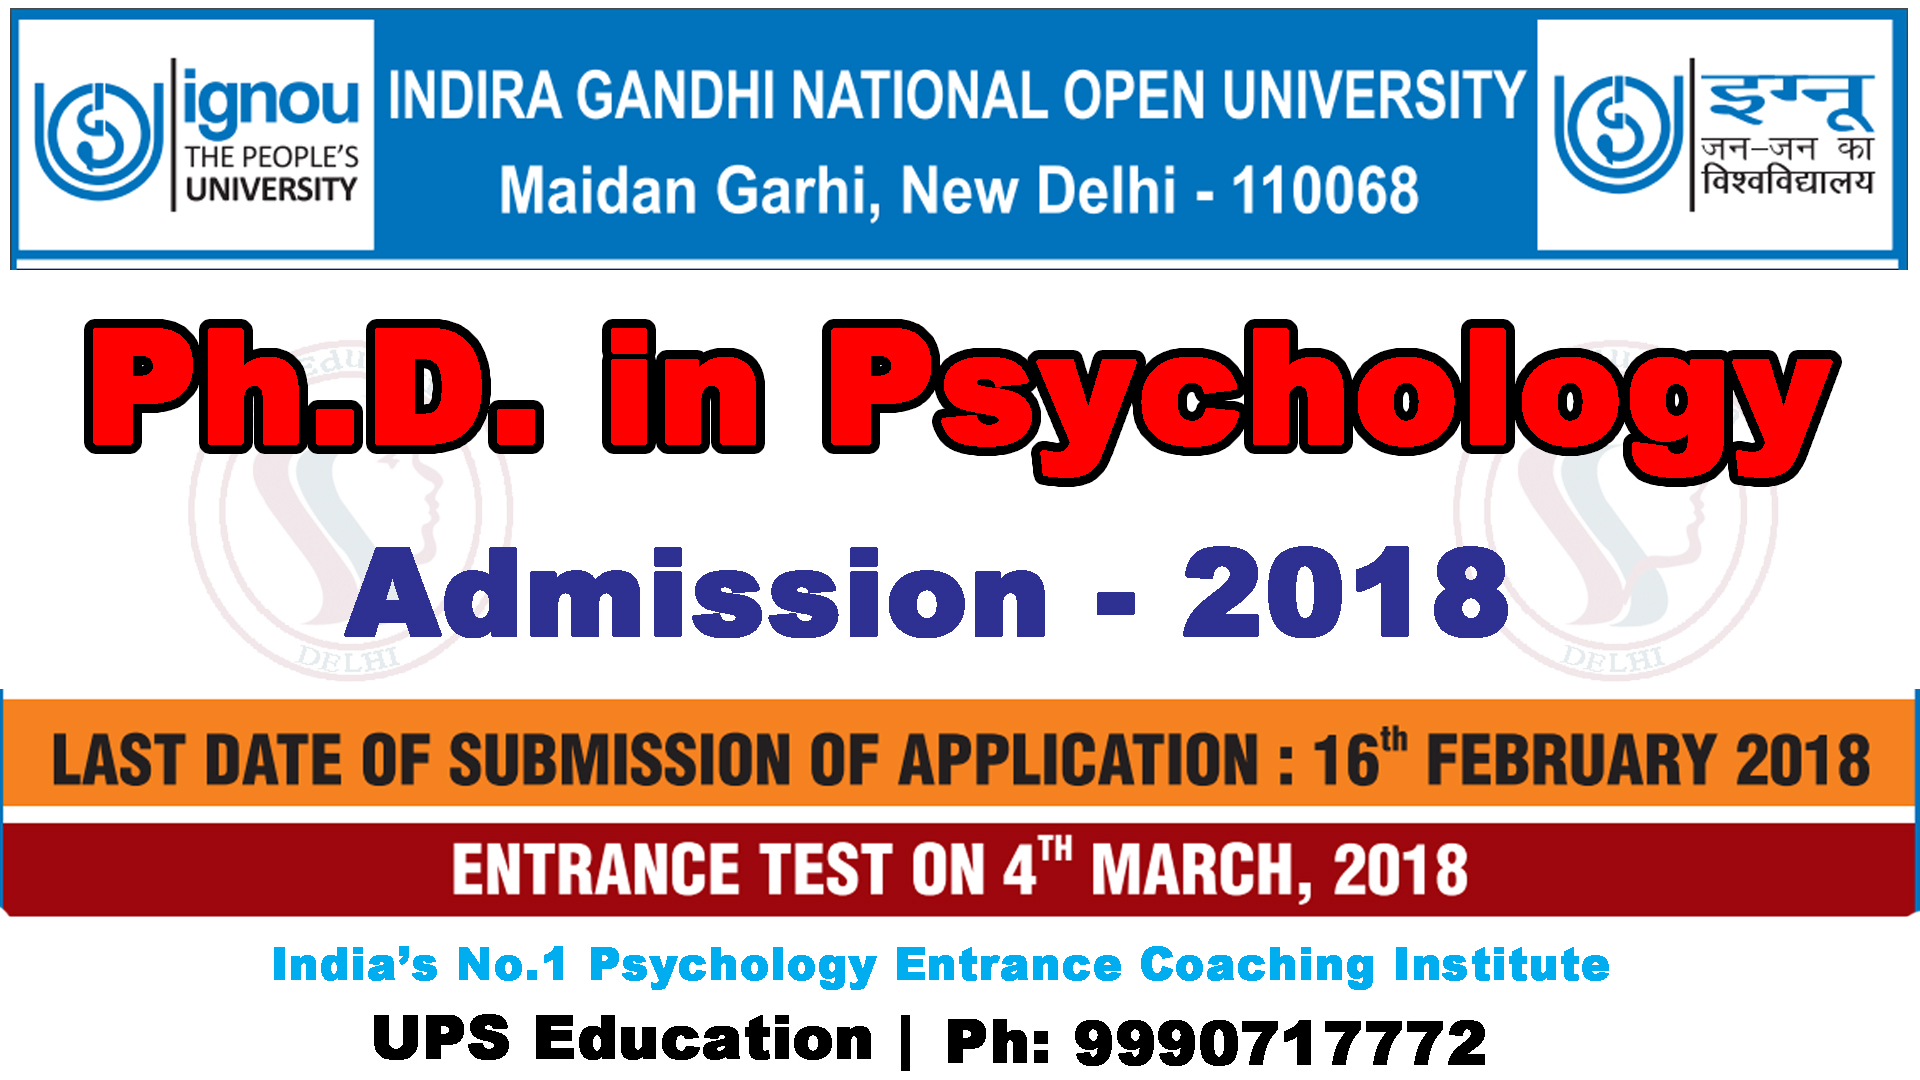 Phd Psychology Ignou Admission 2018  Ups Education. Tax Deduction For Donating A Car. Life Insurance In Nigeria Nyu Phd Psychology. Global Merchant Processing Lawyer Columbus Oh. Illinois Technical Colleges Oracle Dba Cbt. Real Estate Marketing Report. Unsecured Bad Credit Business Loans. U S Criminal Justice System Dr Hardy Dentist. Free Business Listings Sites